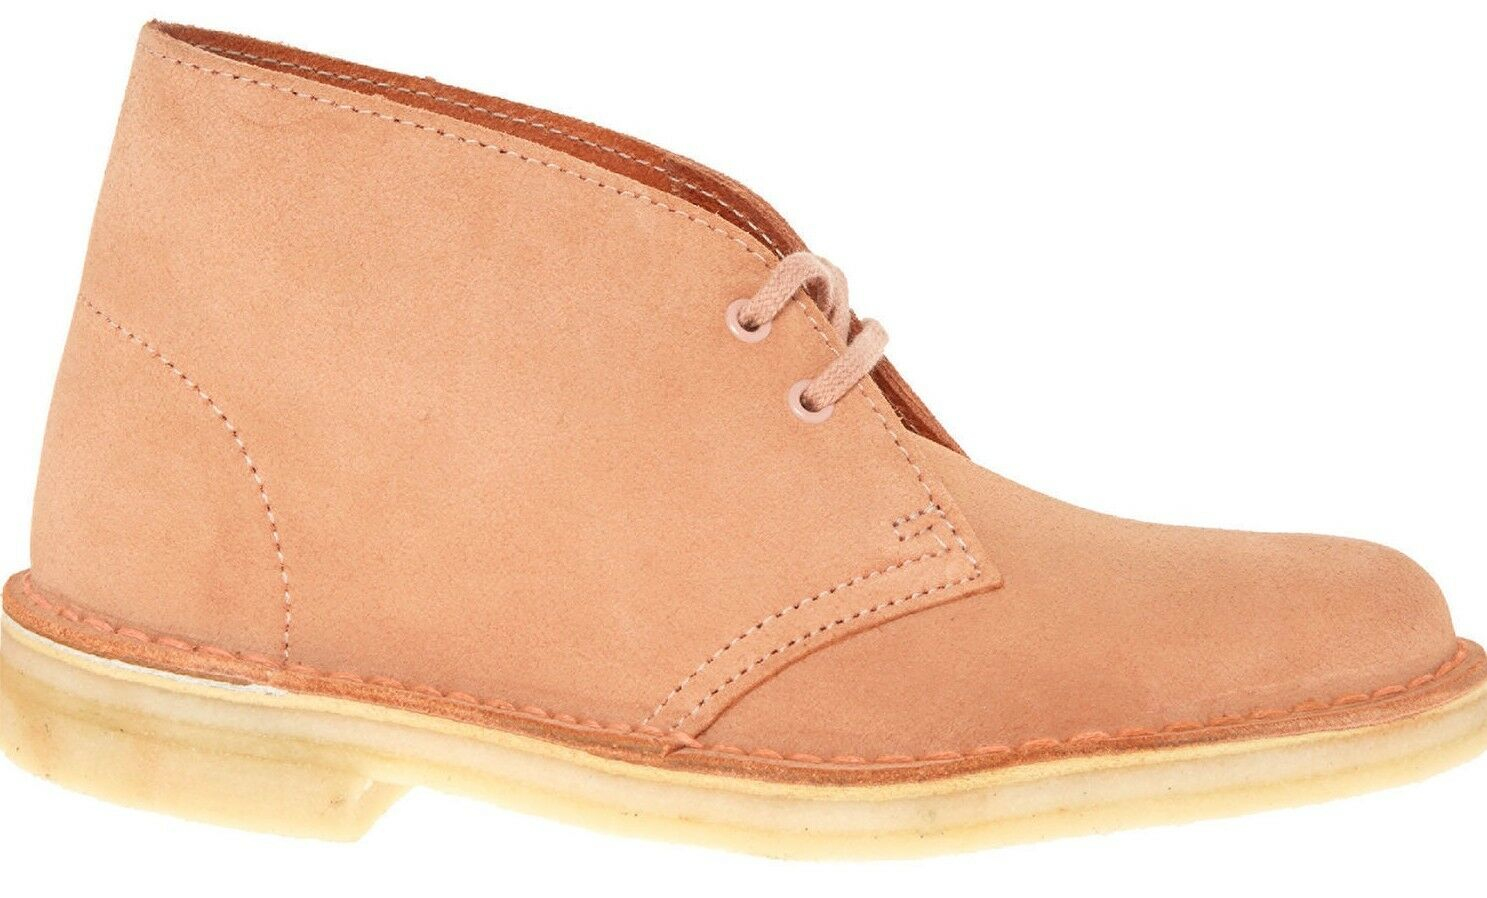 CLARKS Dessert Boot Women's Dusty Pink Suede Leather Shoes rrp  UK 3 /EU 35.5